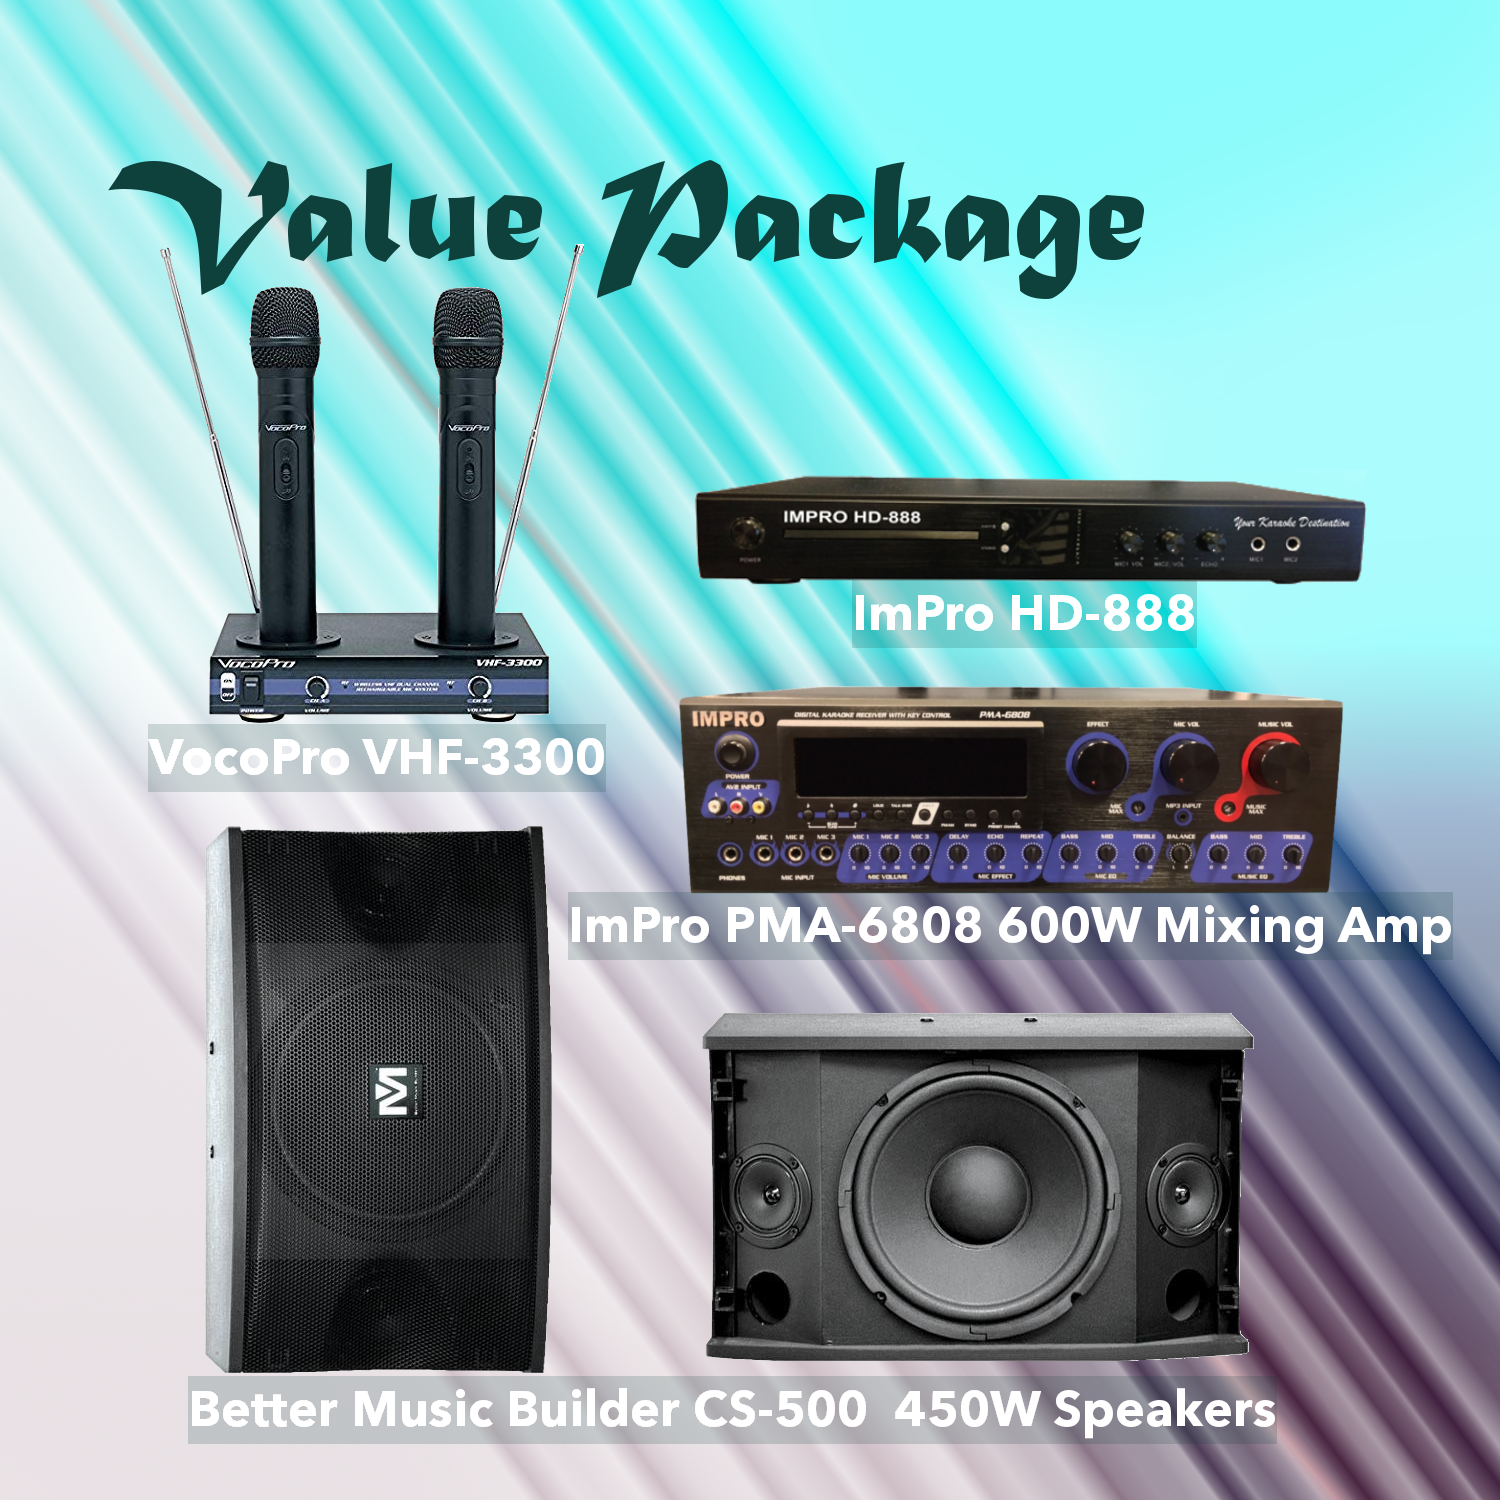 Value Package #1: Combination Of HD-888 (3TB), PMA-6808, CS-500, VHF-3300